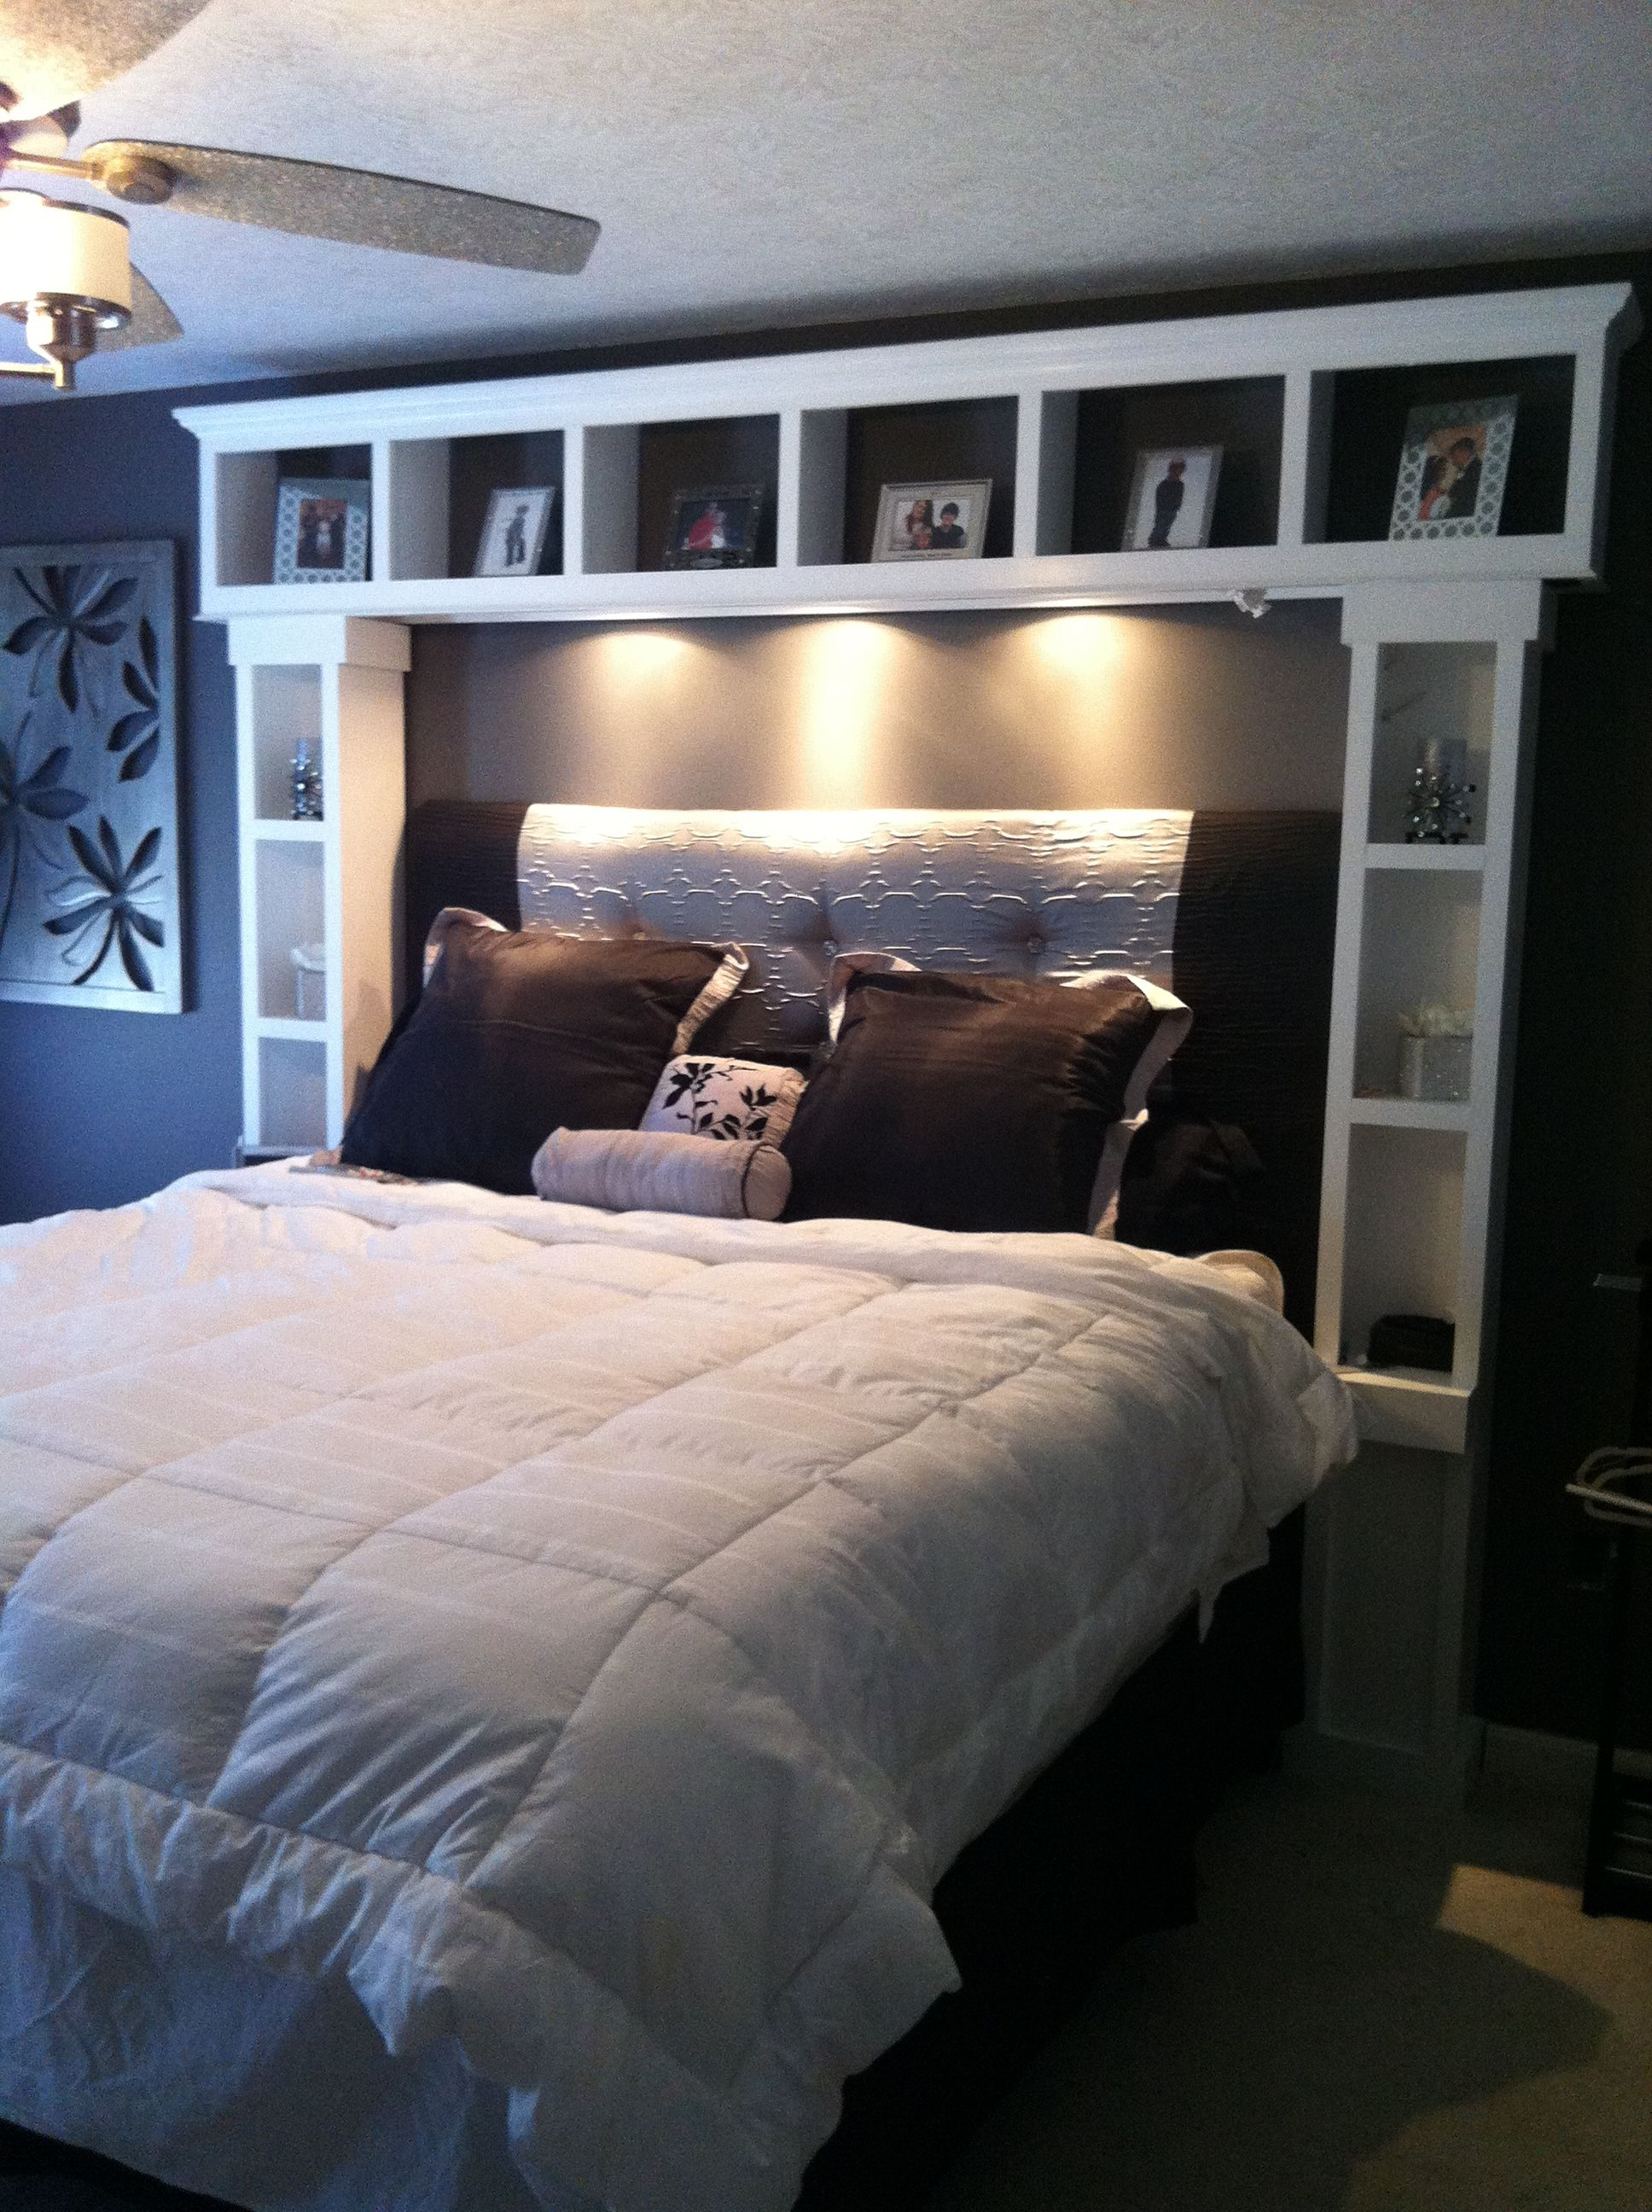 Bed Headboard Diy Bed I Want These Shelves Its Like Our Headboard Times 10